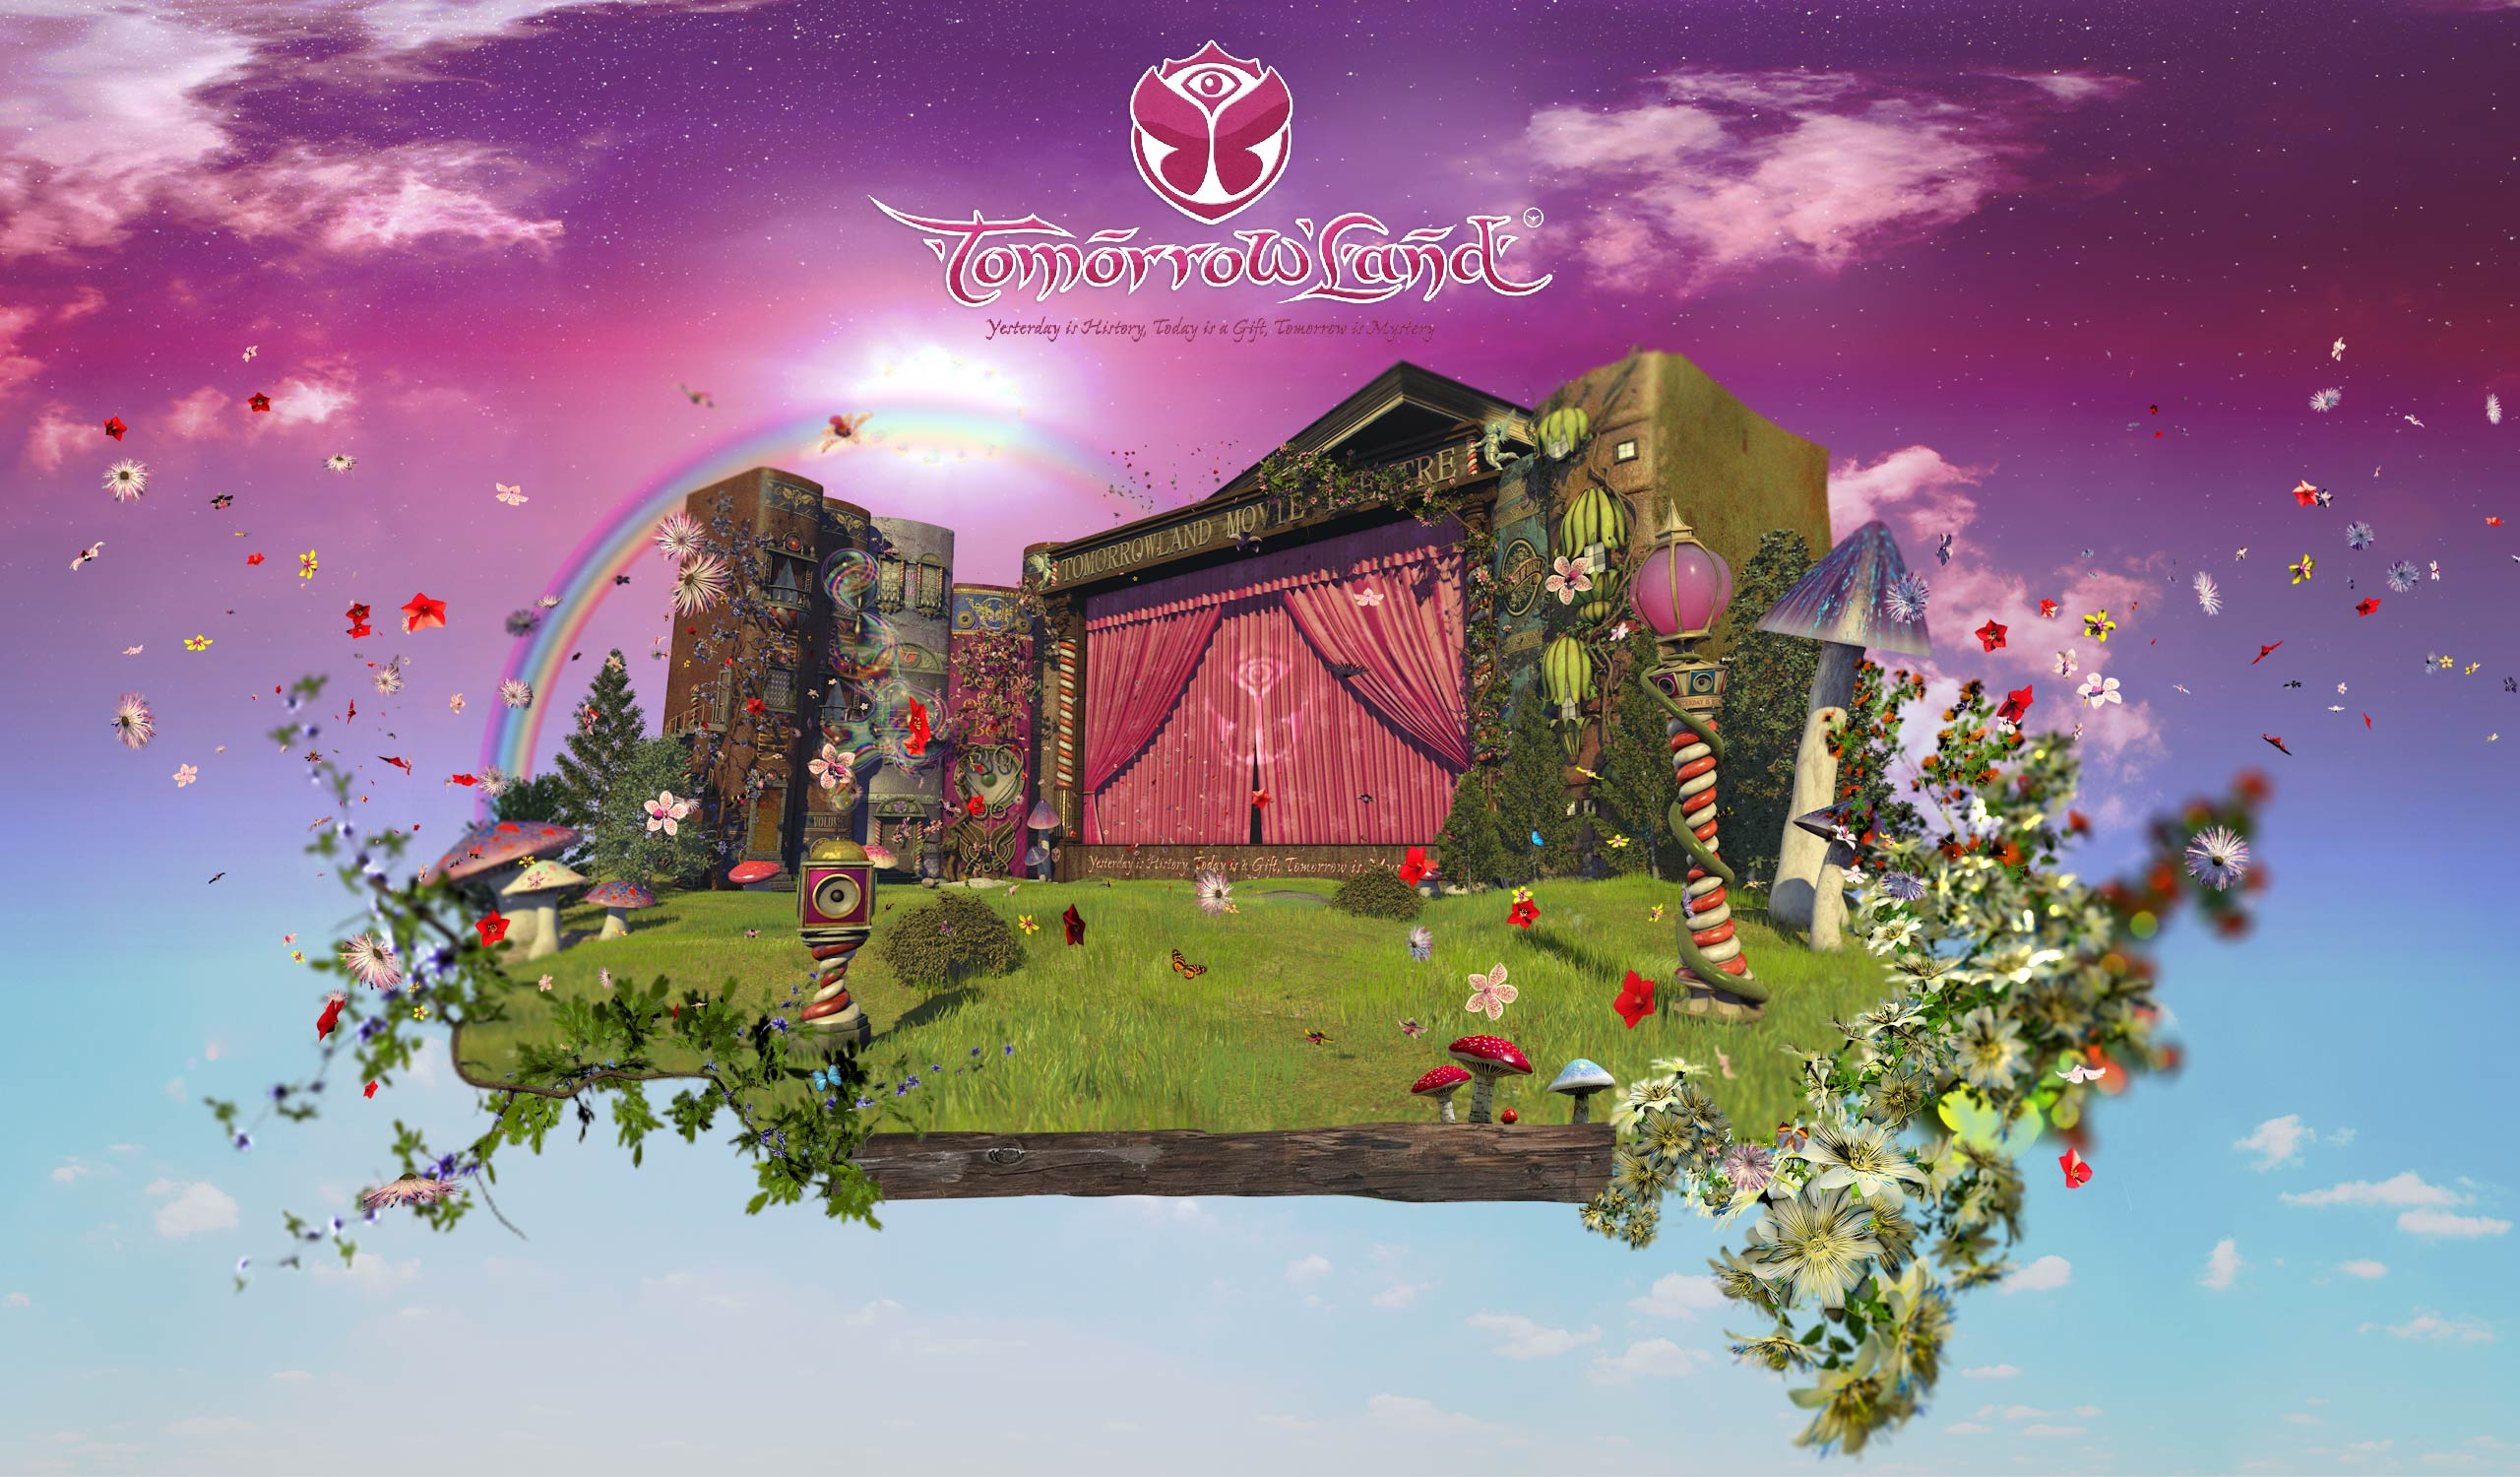 THE TOMORROWLAND 2012 OFFICIAL AFTER MOVIE IS COMING! VIEW THE COUNTDOWN HERE The 2011 Tomorrowland after-movie is a phenomenon. With almost 49 million views clocked up in just 12 months, […]